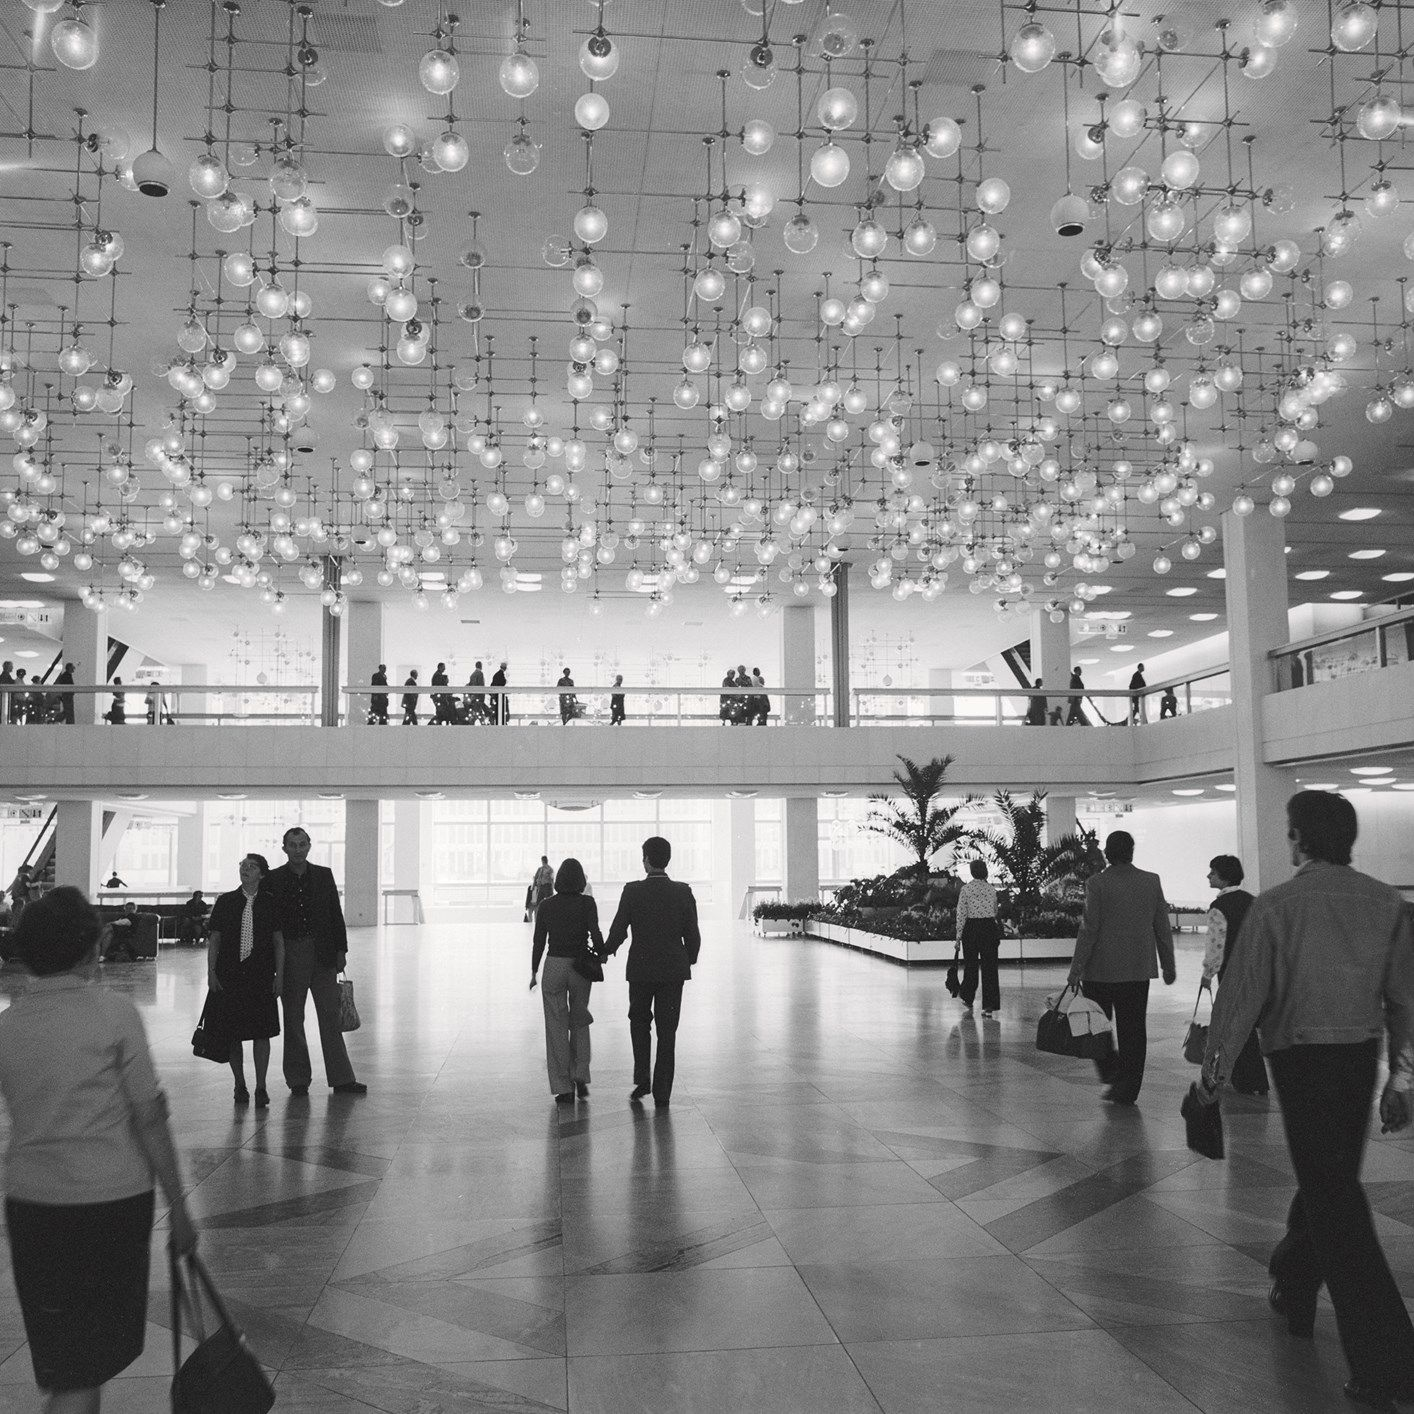 Interior view of Palace of the Republic in Berlin – Mitte district, 1977 © ddrbildarchiv.de/Manfred Uhlenhut